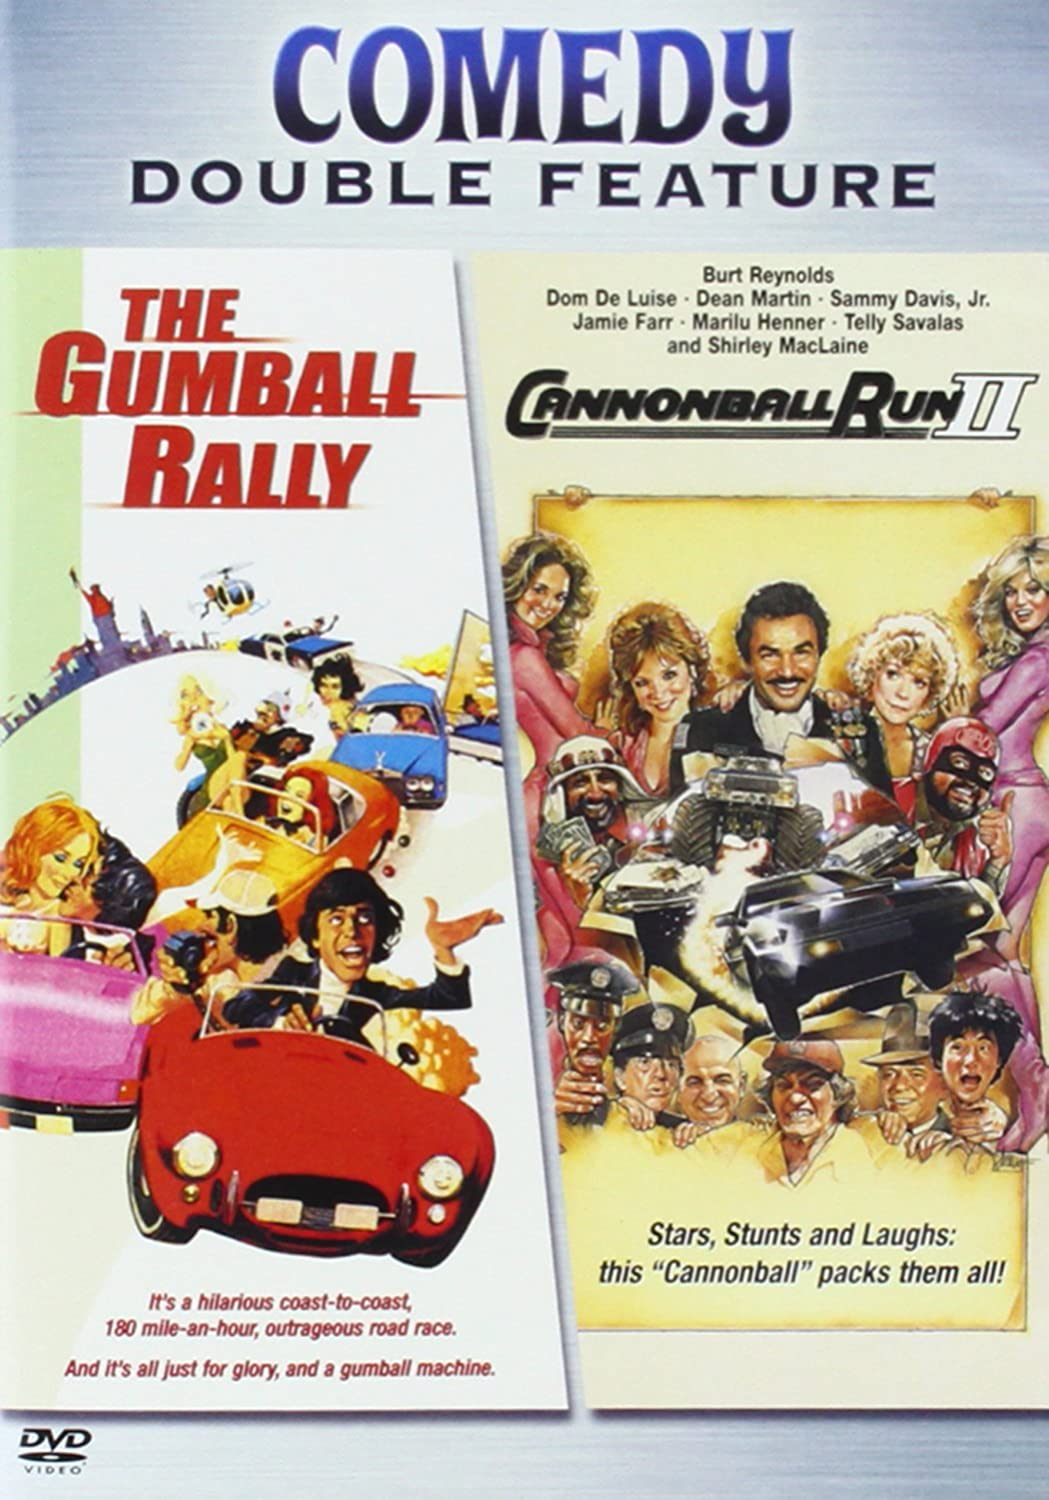 The Gumball Rally / Cannonball Run 2 Various Warner Bros. Home Video 76757 Comedies